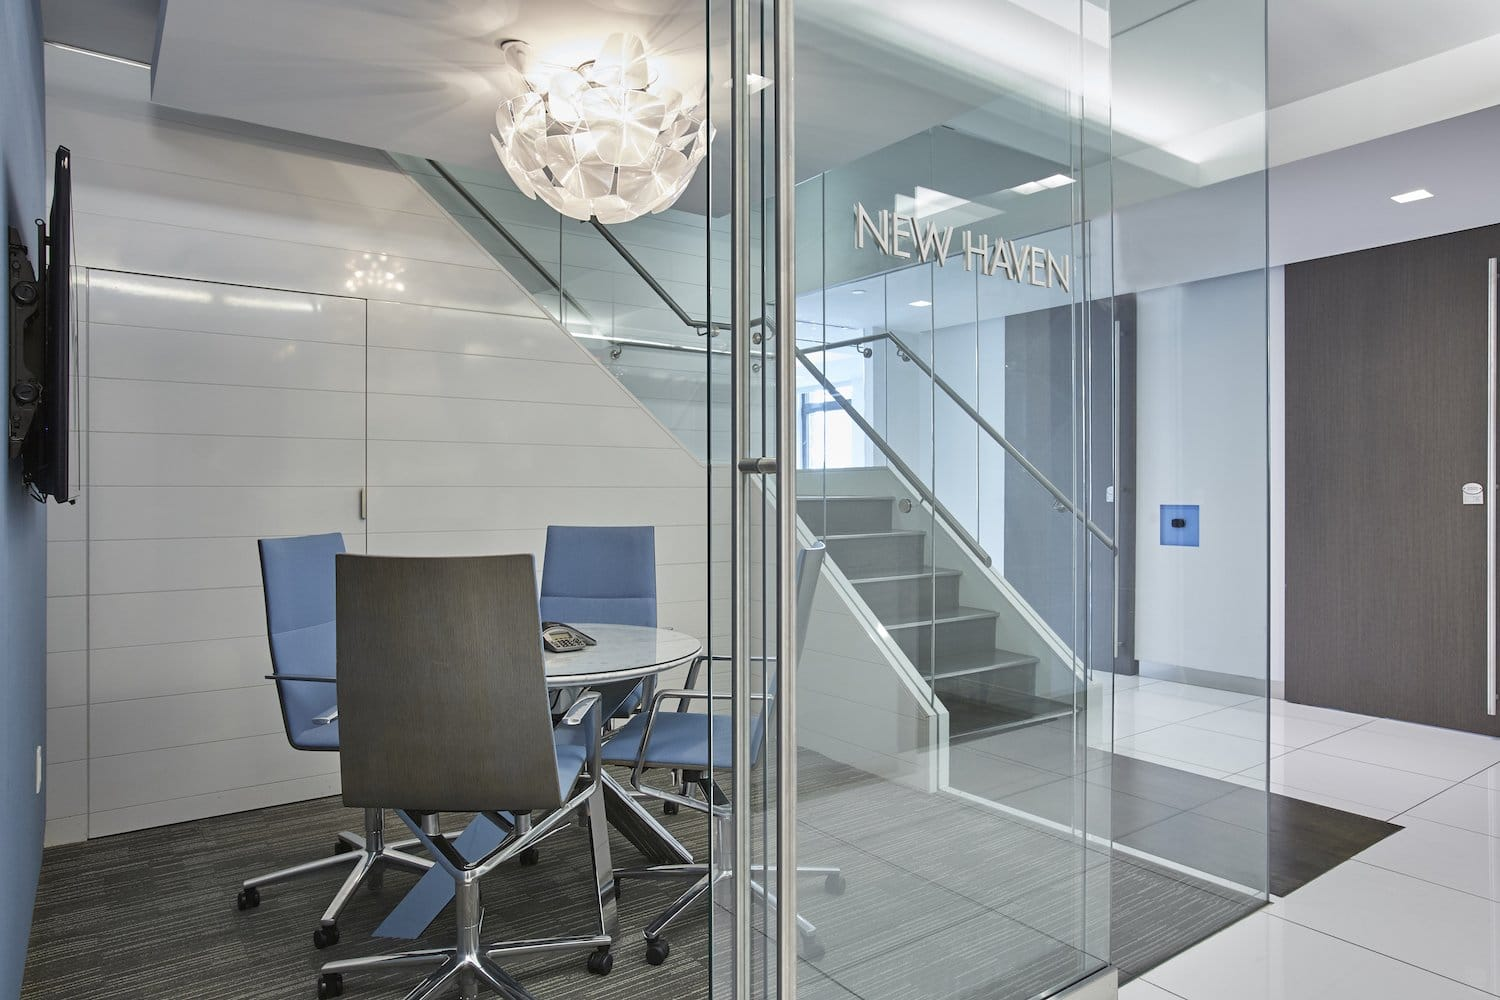 New Haven meeting room behind glass walls